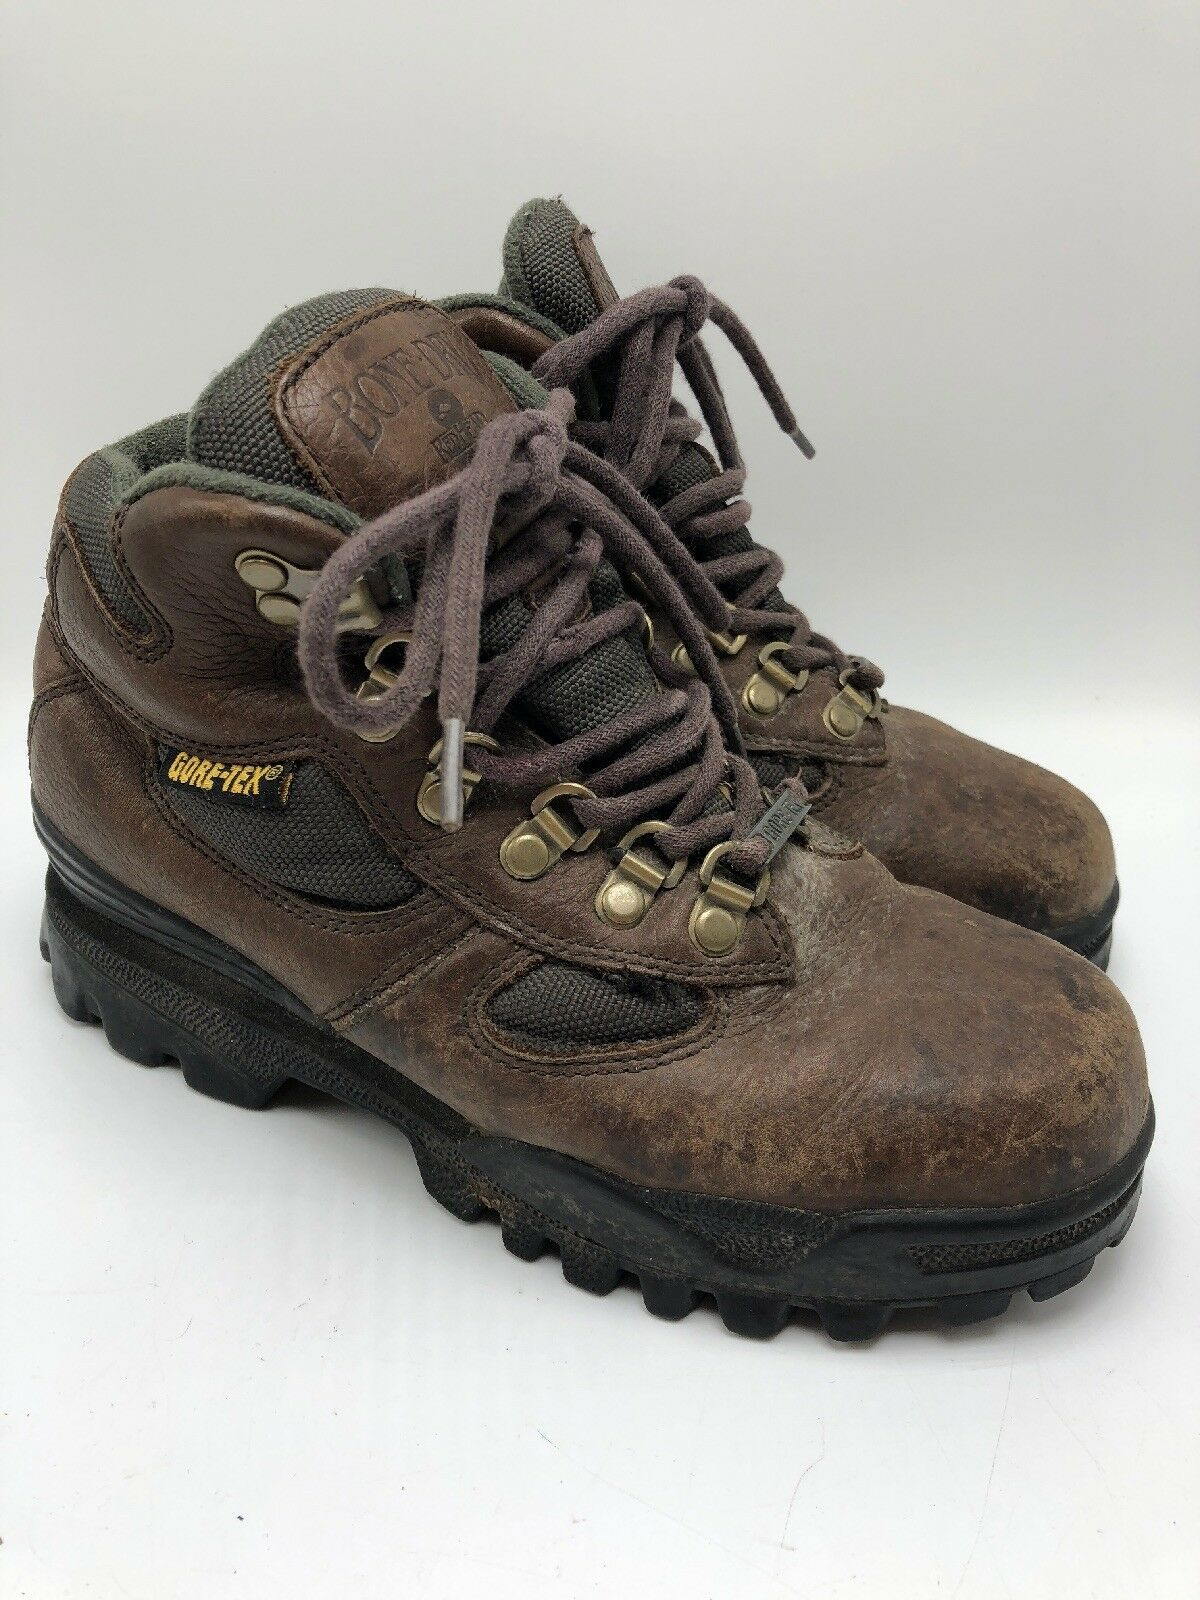 Redhead Bone Dry  Womens Hiking Ankle Boots Brown Leather Gore-Tex Size 6.5 M